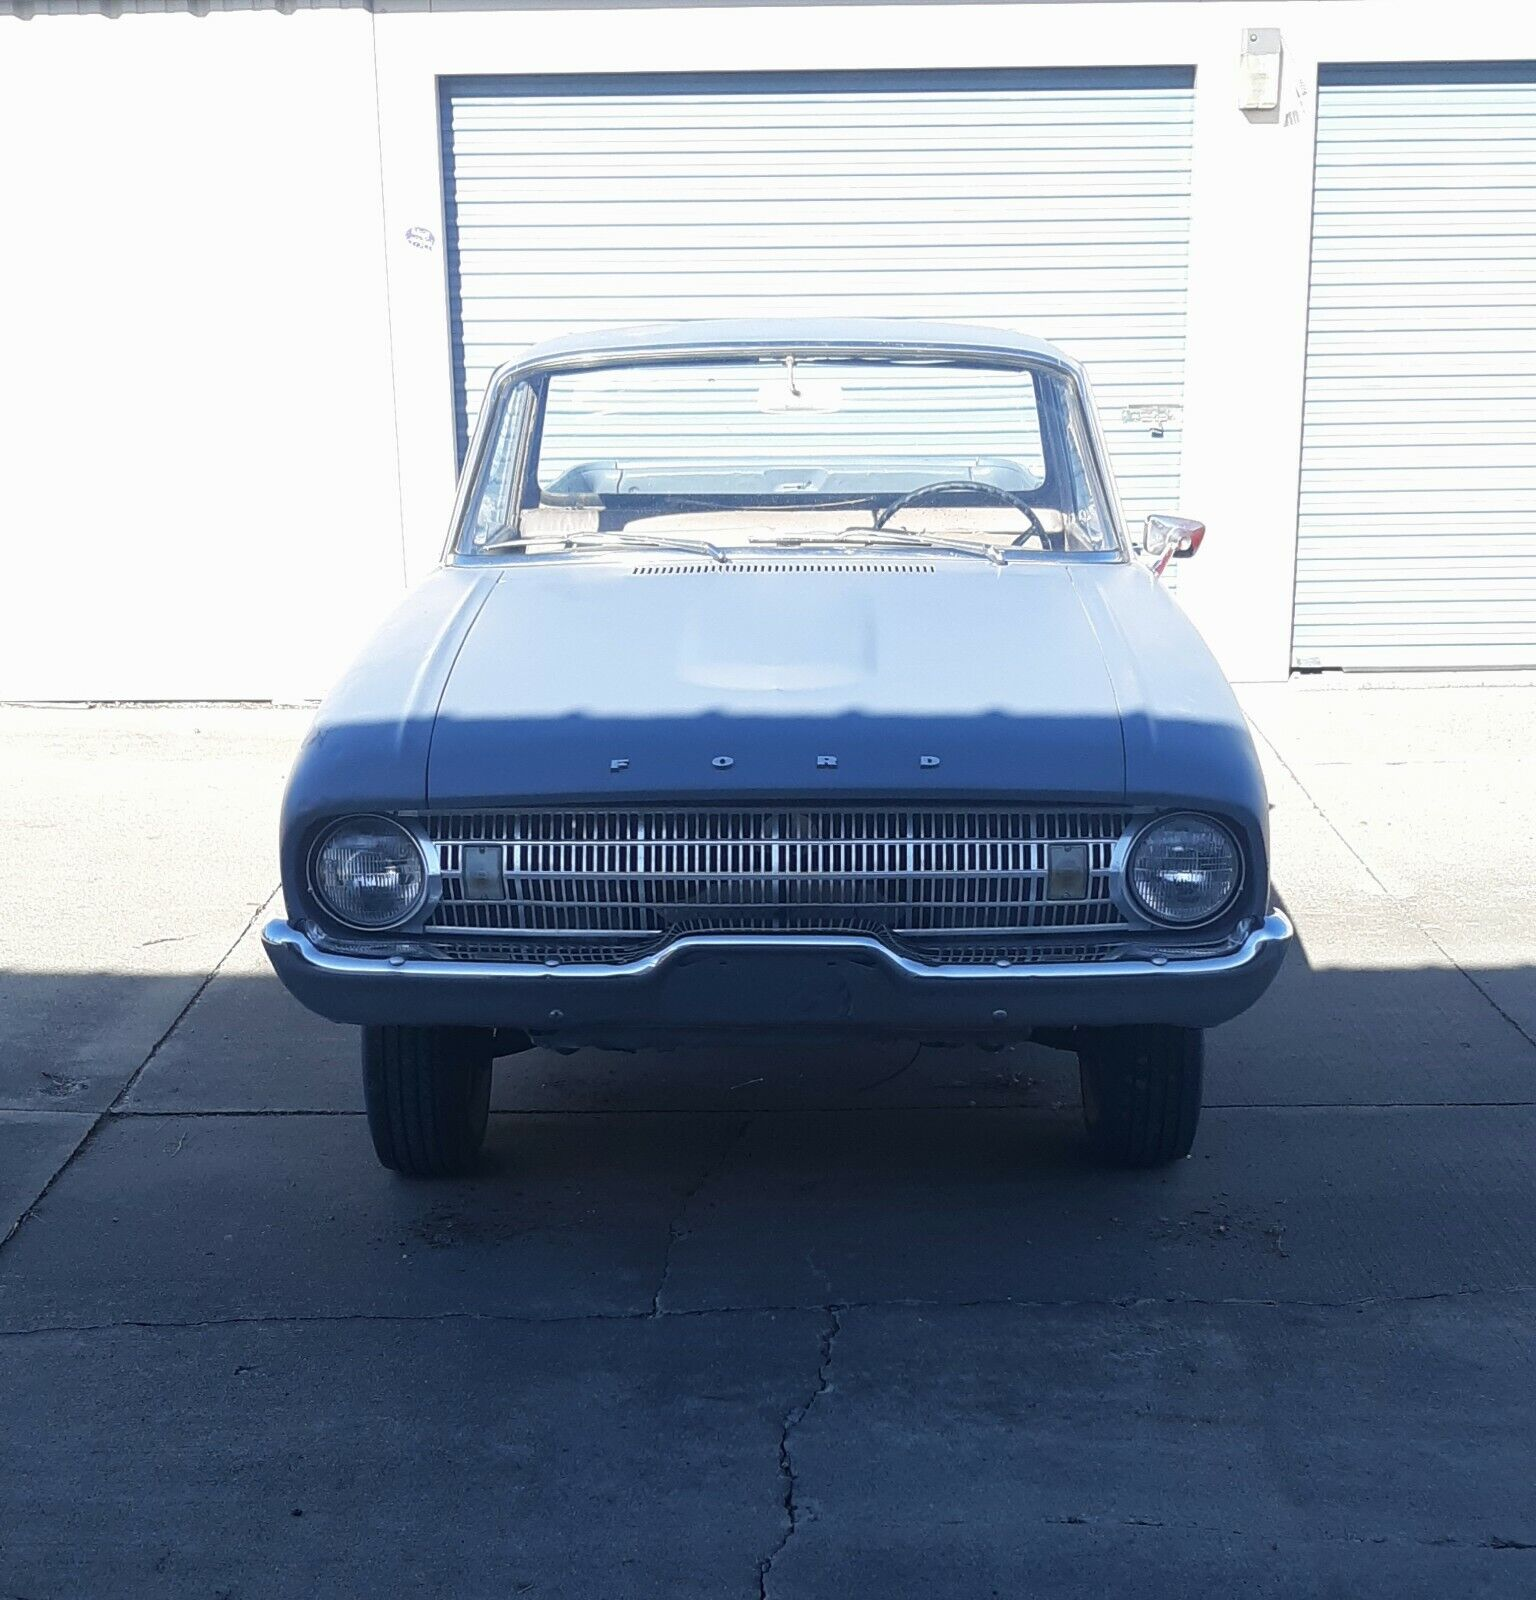 1961 Ford  Falcon Ranchero - Super Solid roller. The Perfect Hot Rod Project.